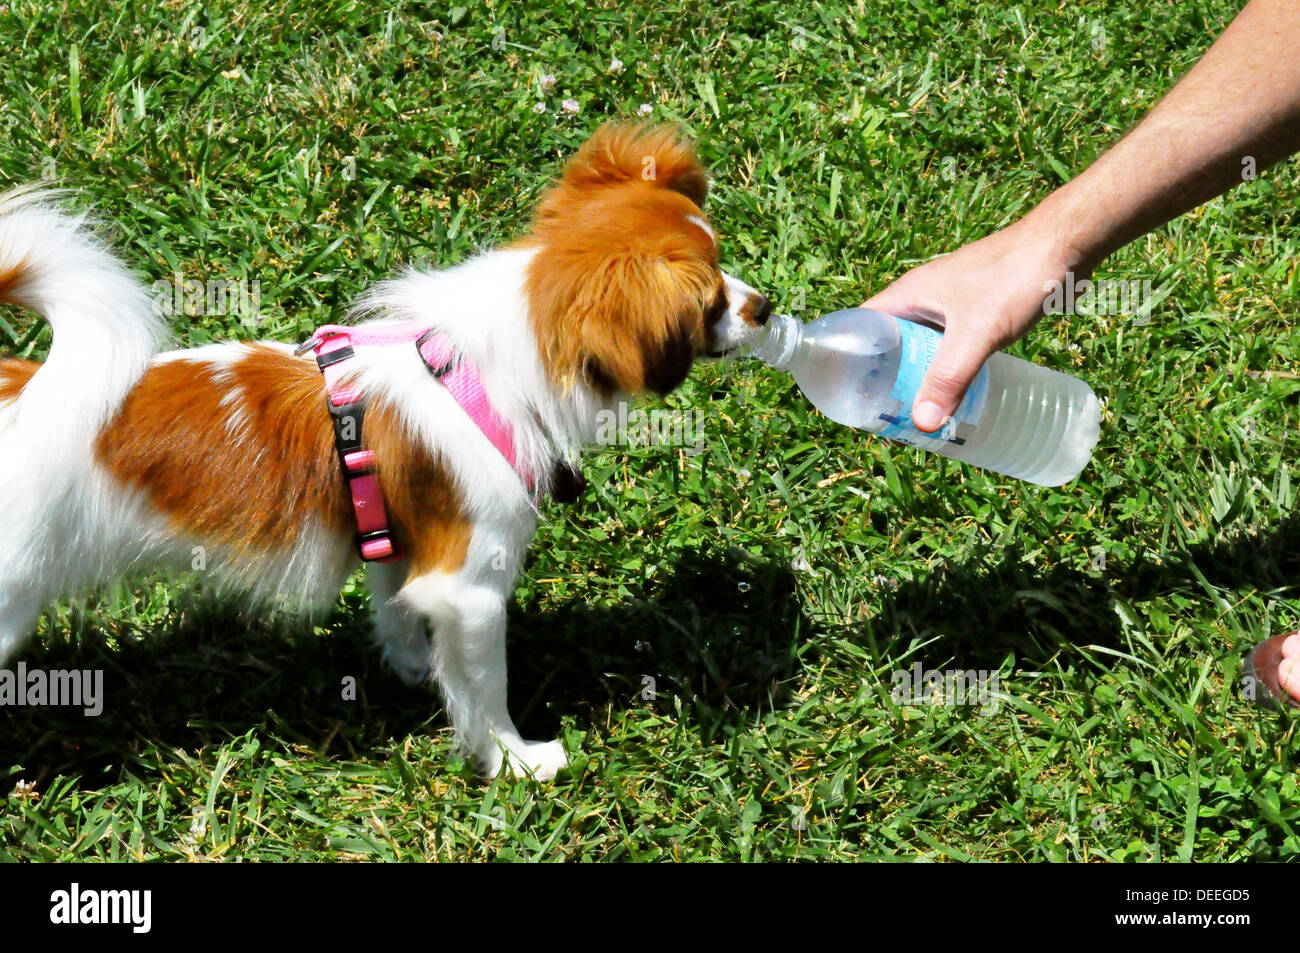 Doggie drinking water - Stock Image